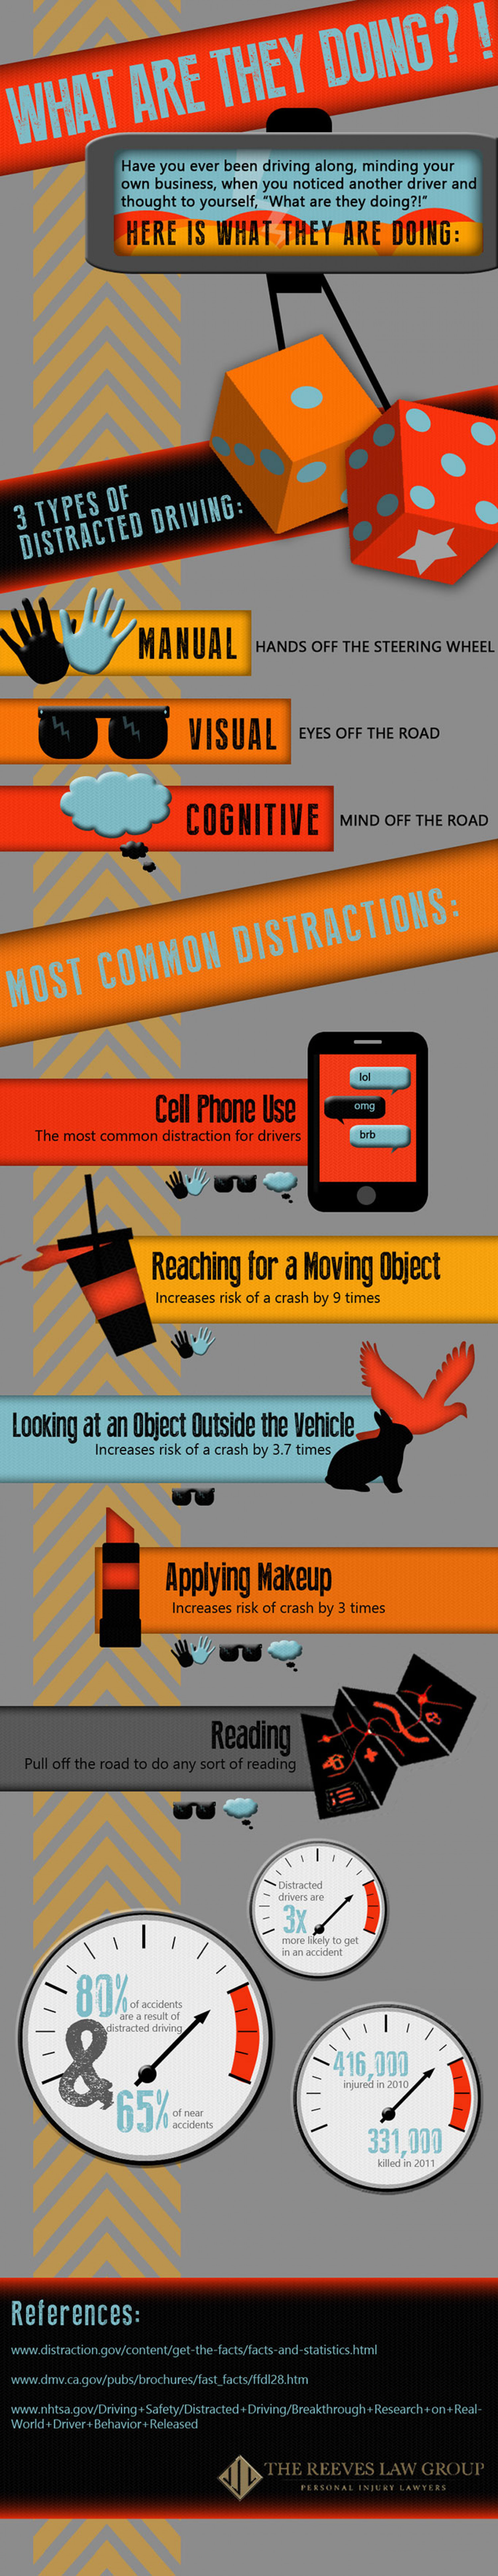 Distracted Driving: What are they doing? Infographic